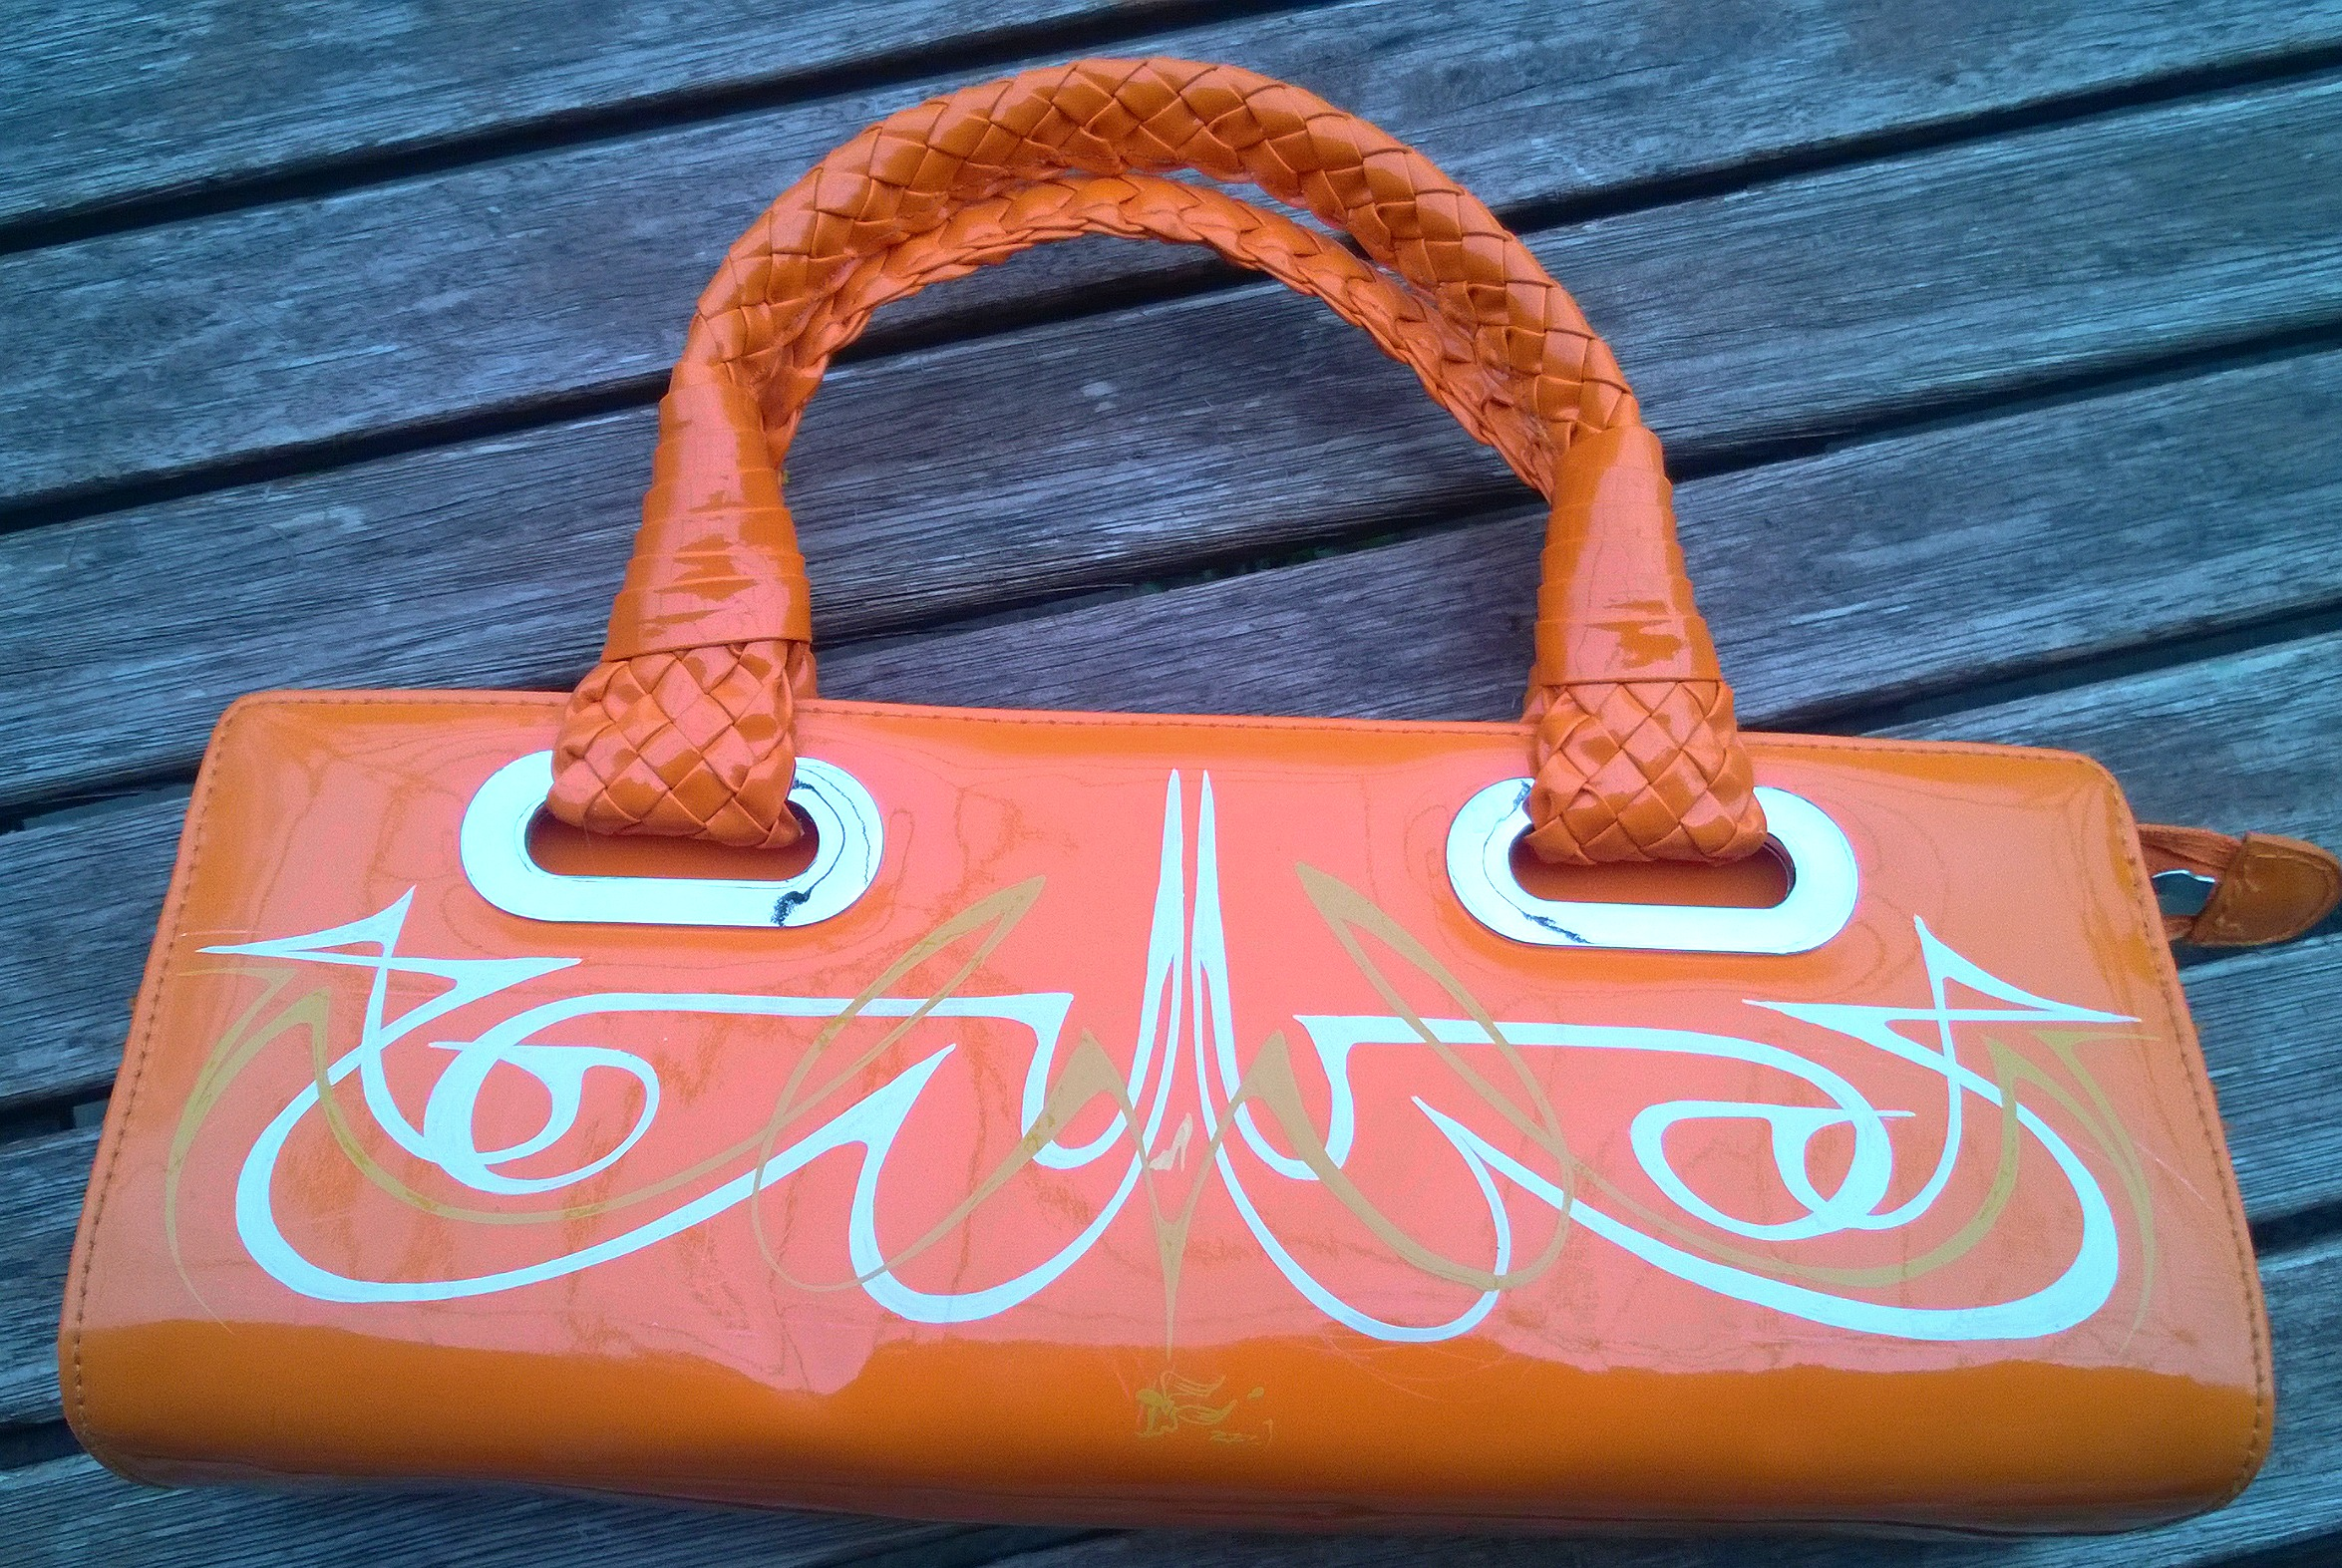 Wizzzcraft brushworks custom purse